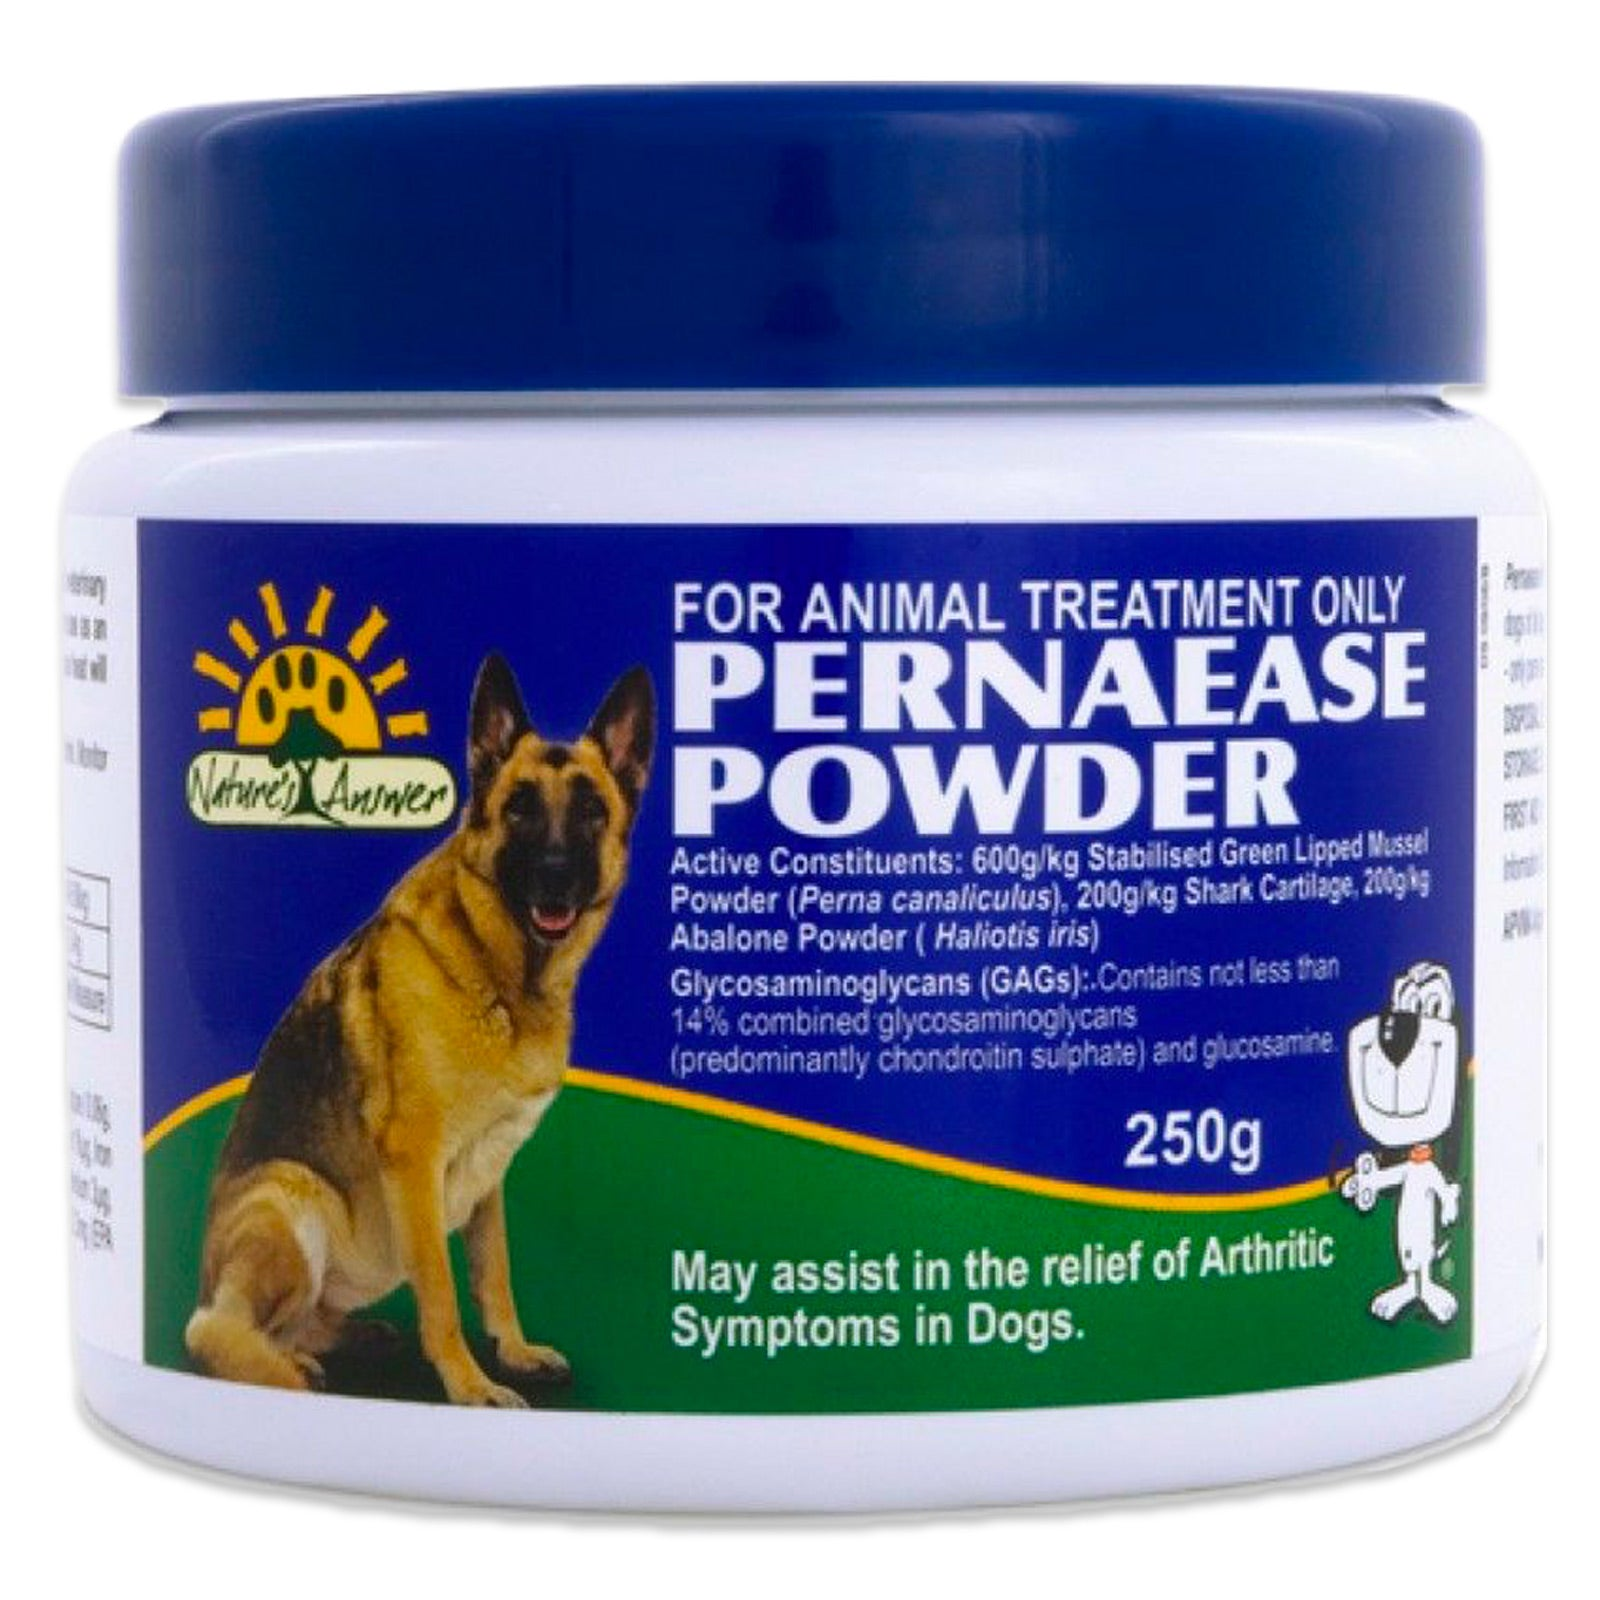 Pernaease Powder By Natures Answer 250g